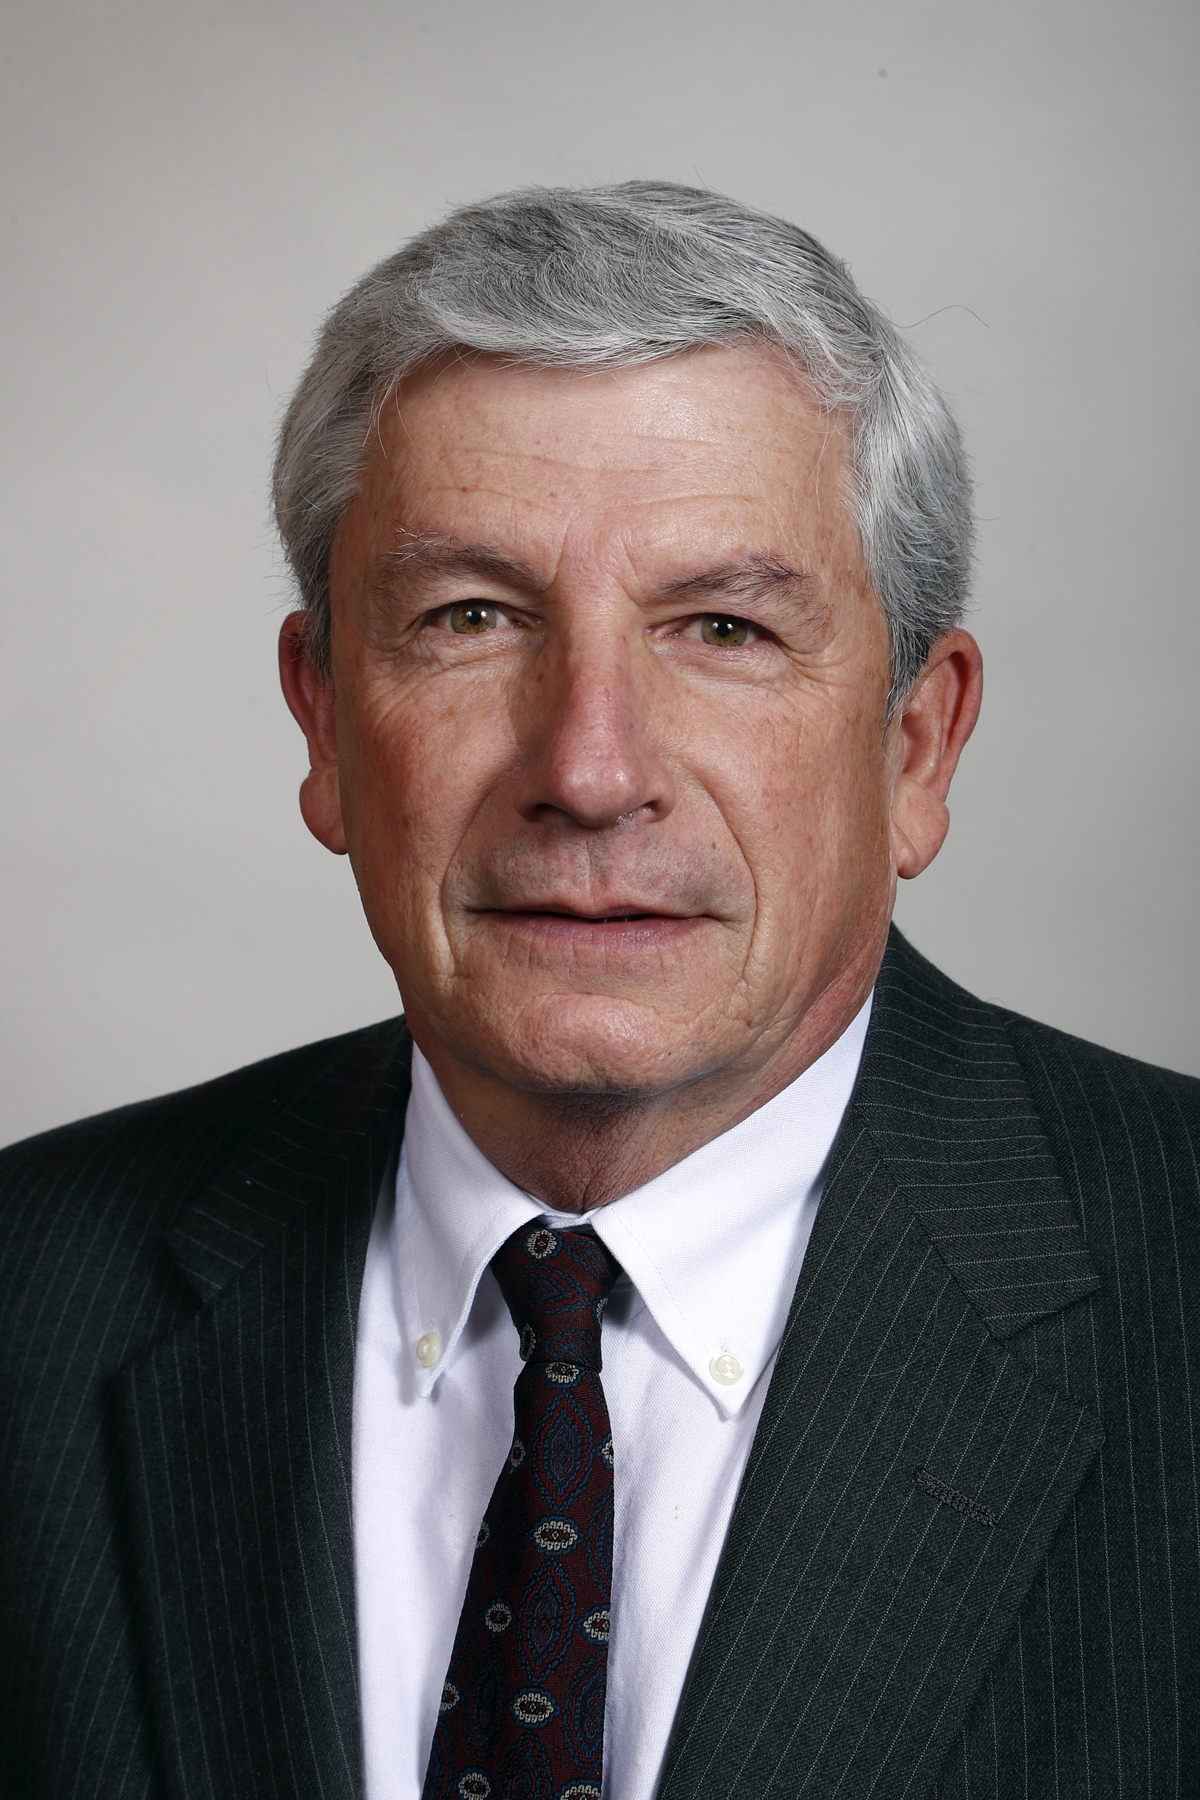 Andy McKean, State Representative, Iowa